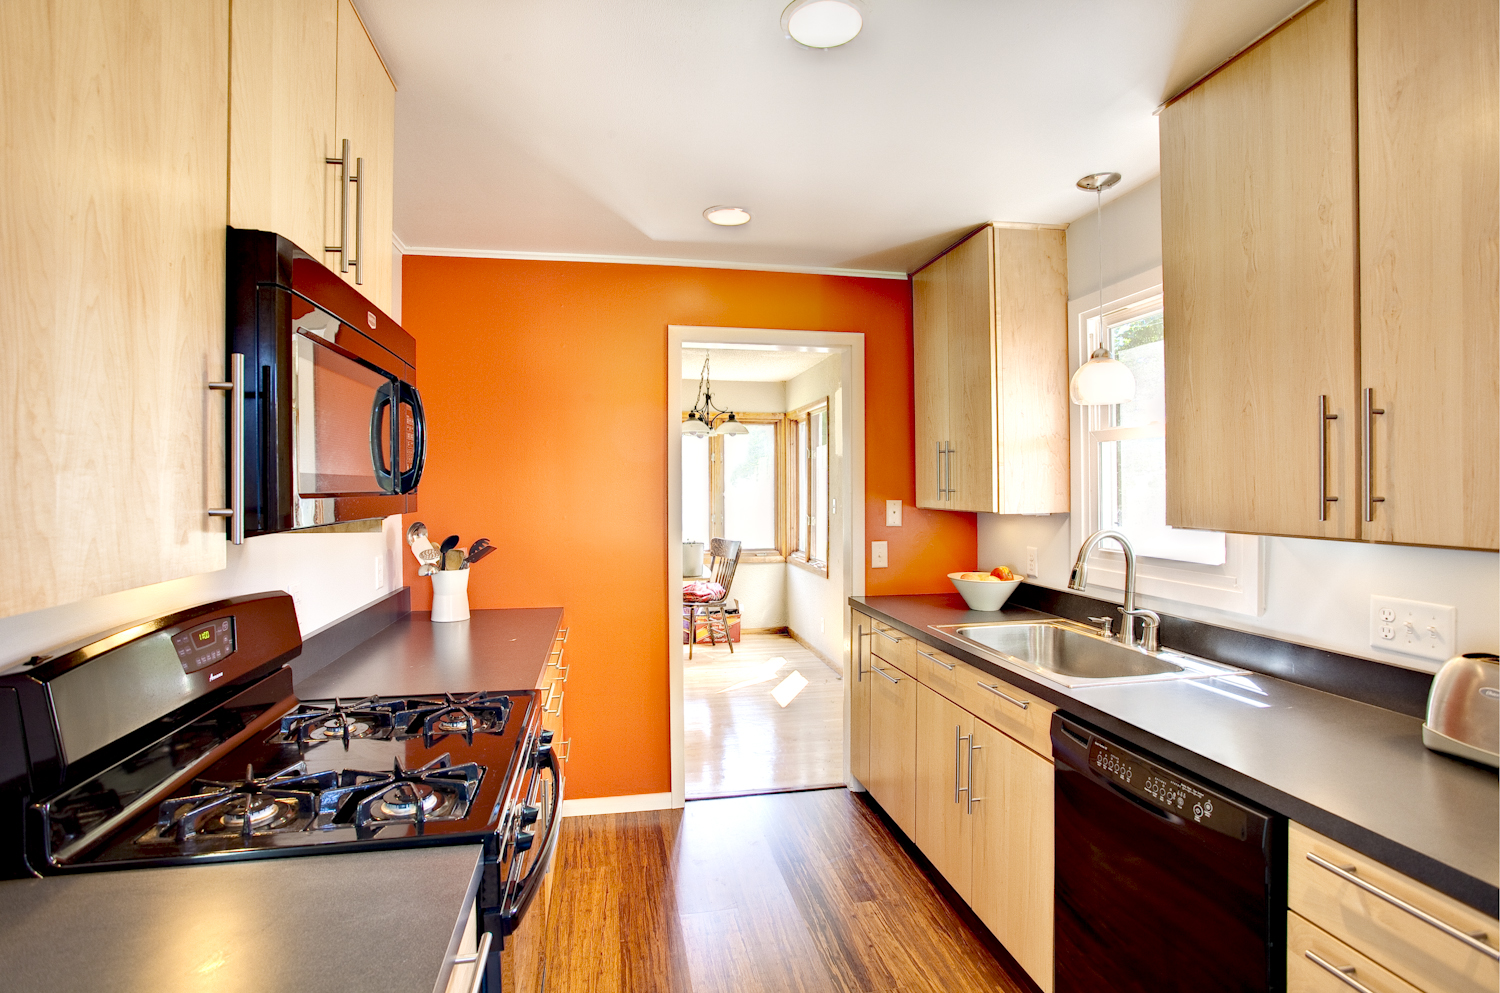 Kitchen with orange walls and light wood cabinets